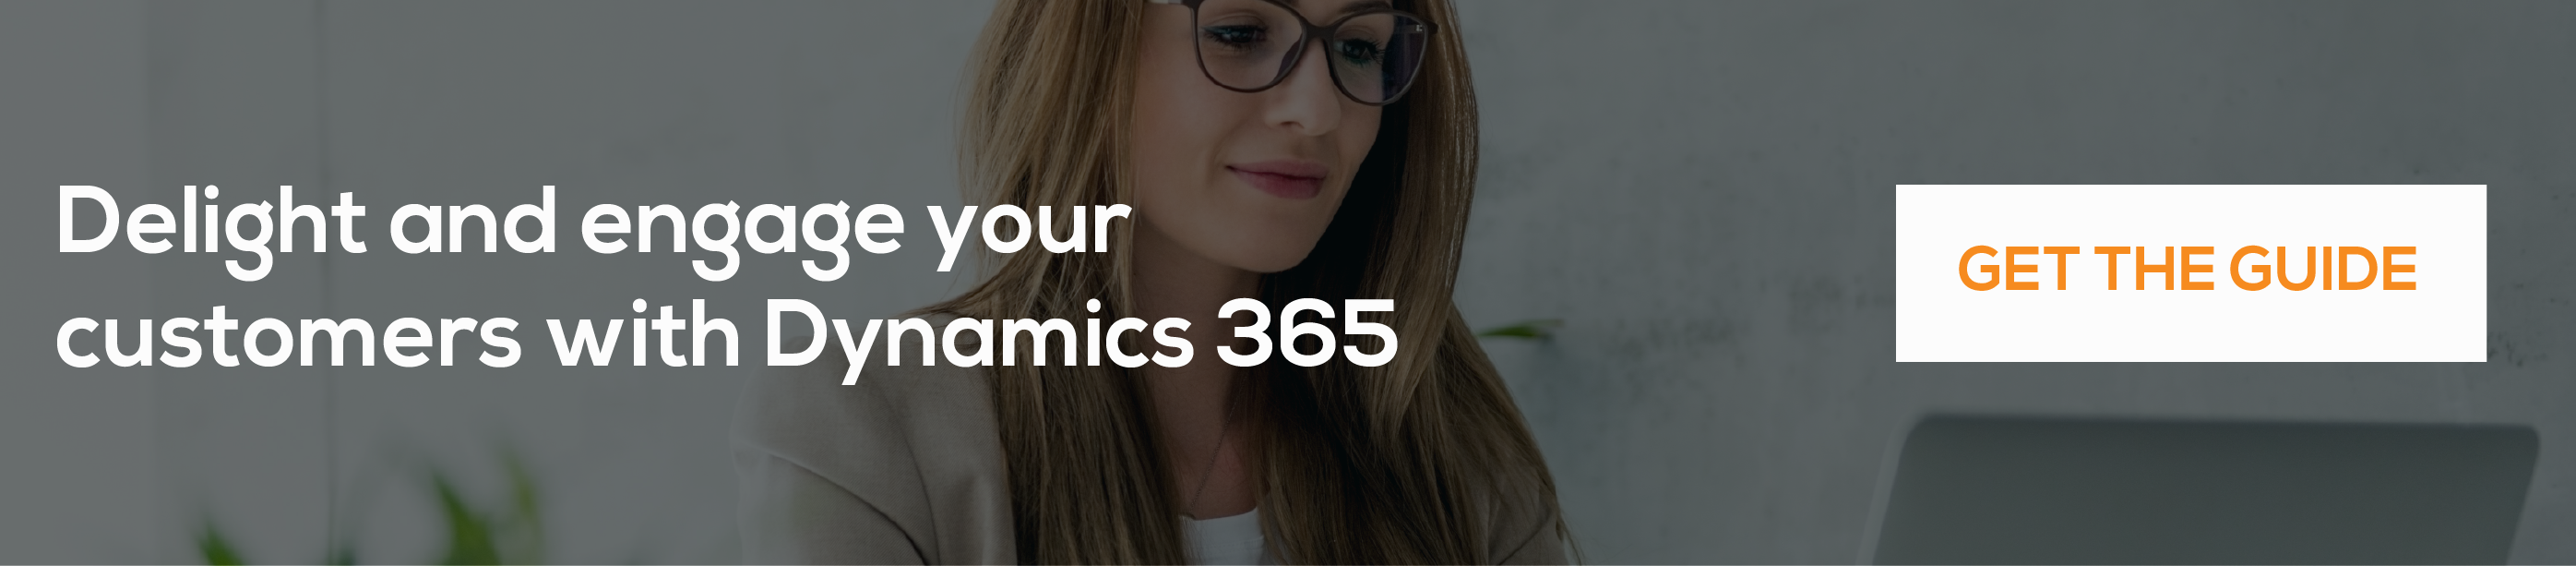 Download our free guide to using dynamics 365 for customer delight